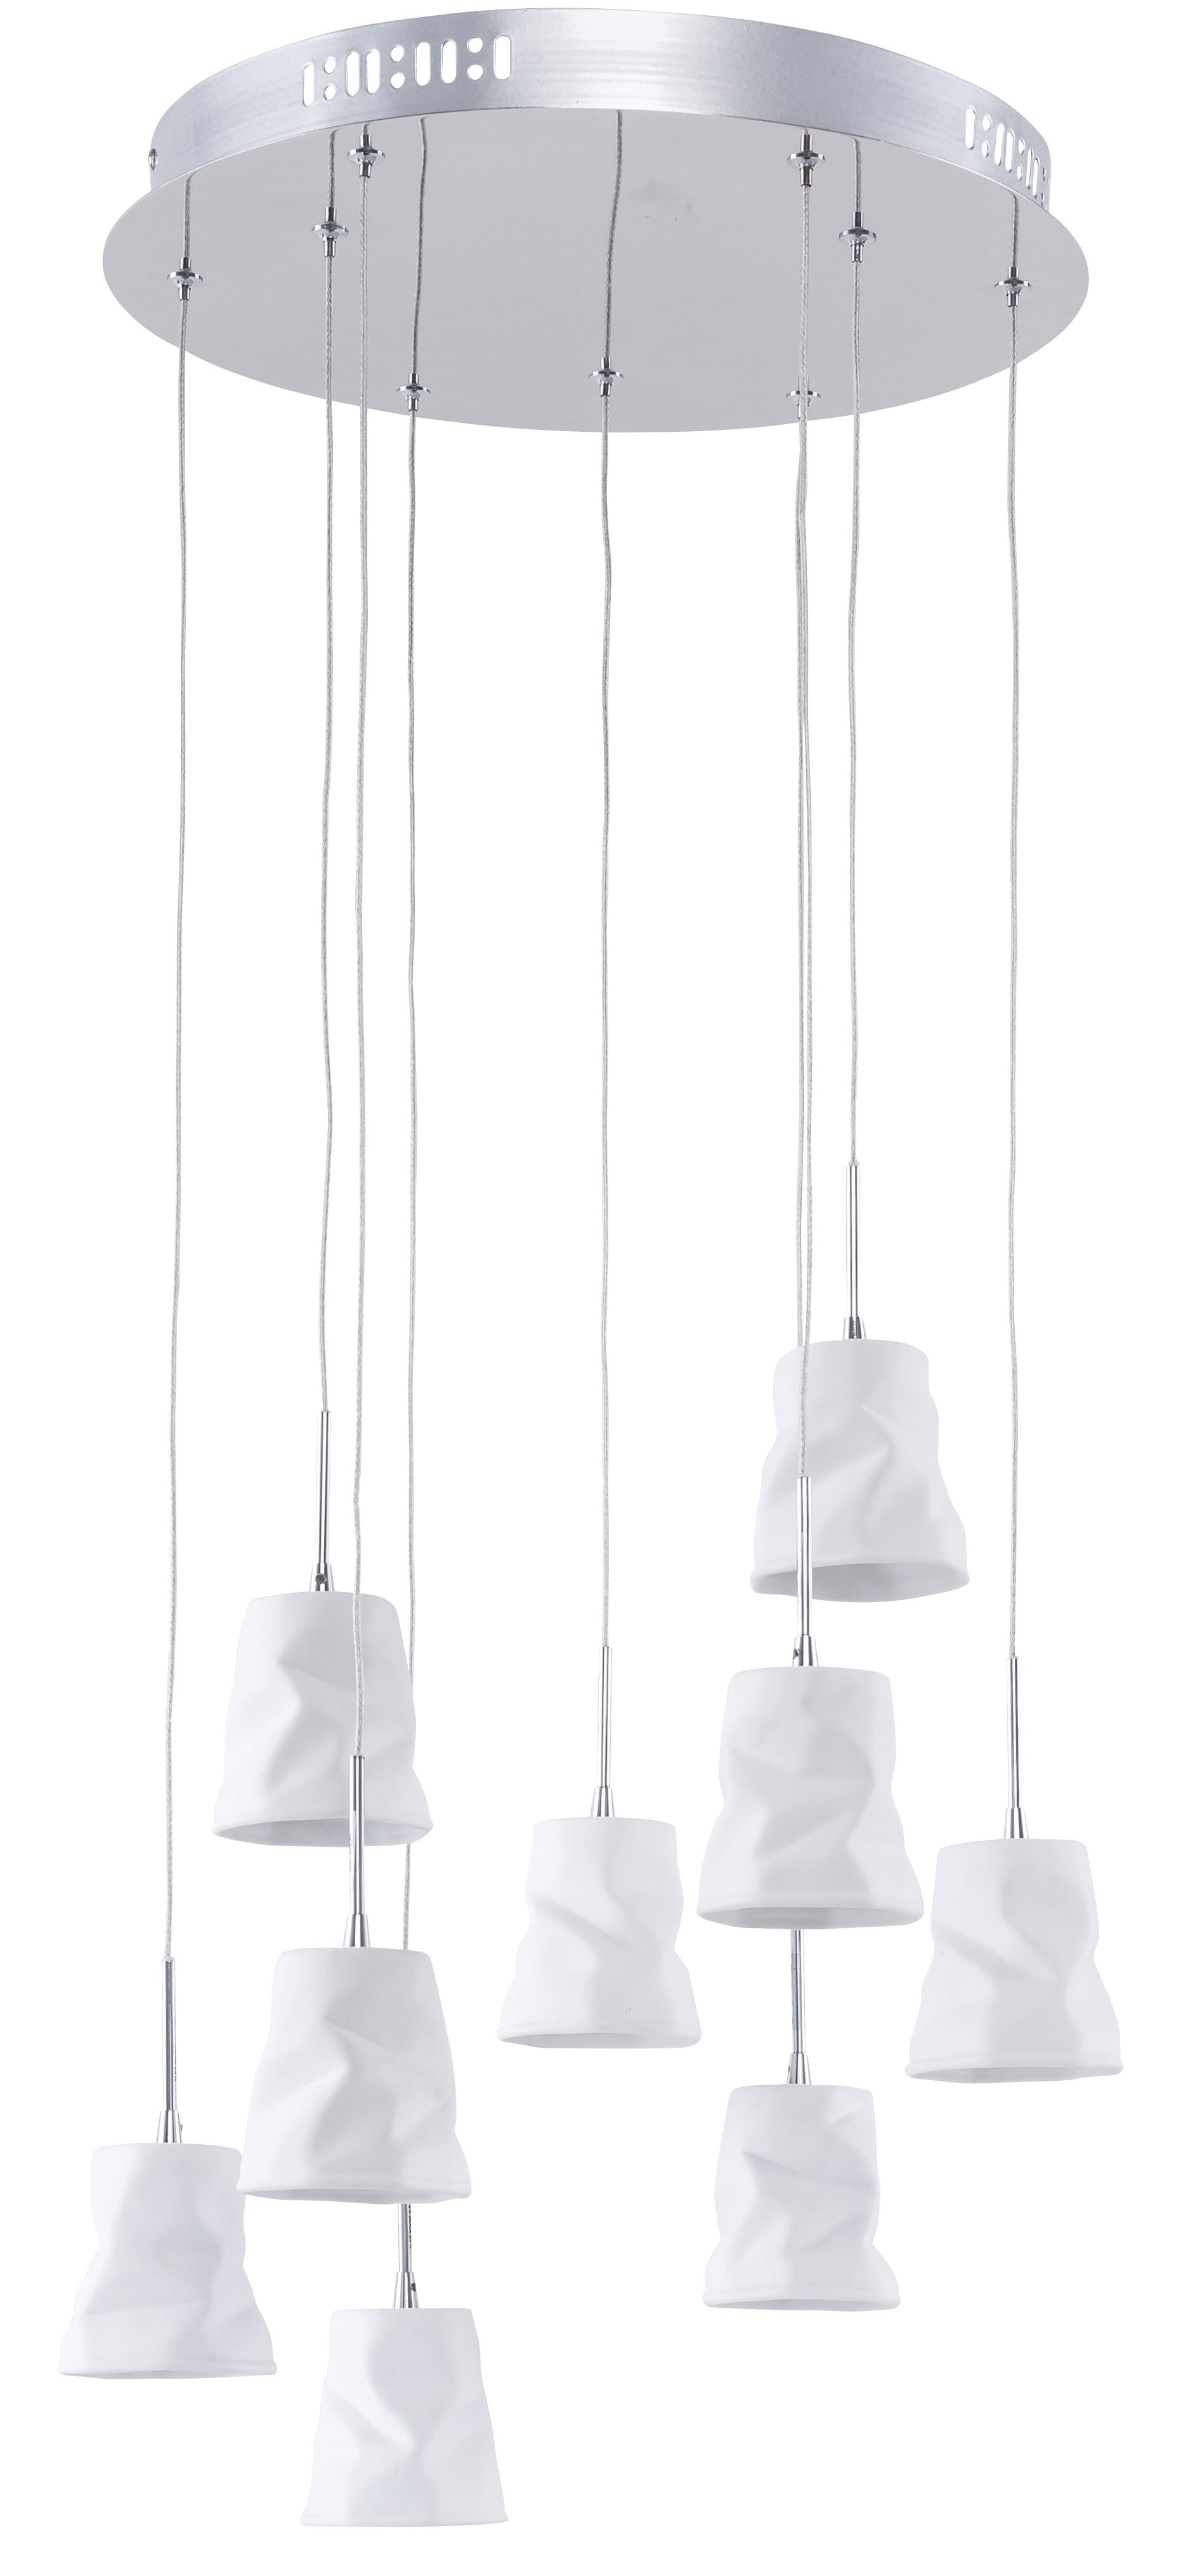 Nine-point pendant lamp Joelle chrom / white G4 20W